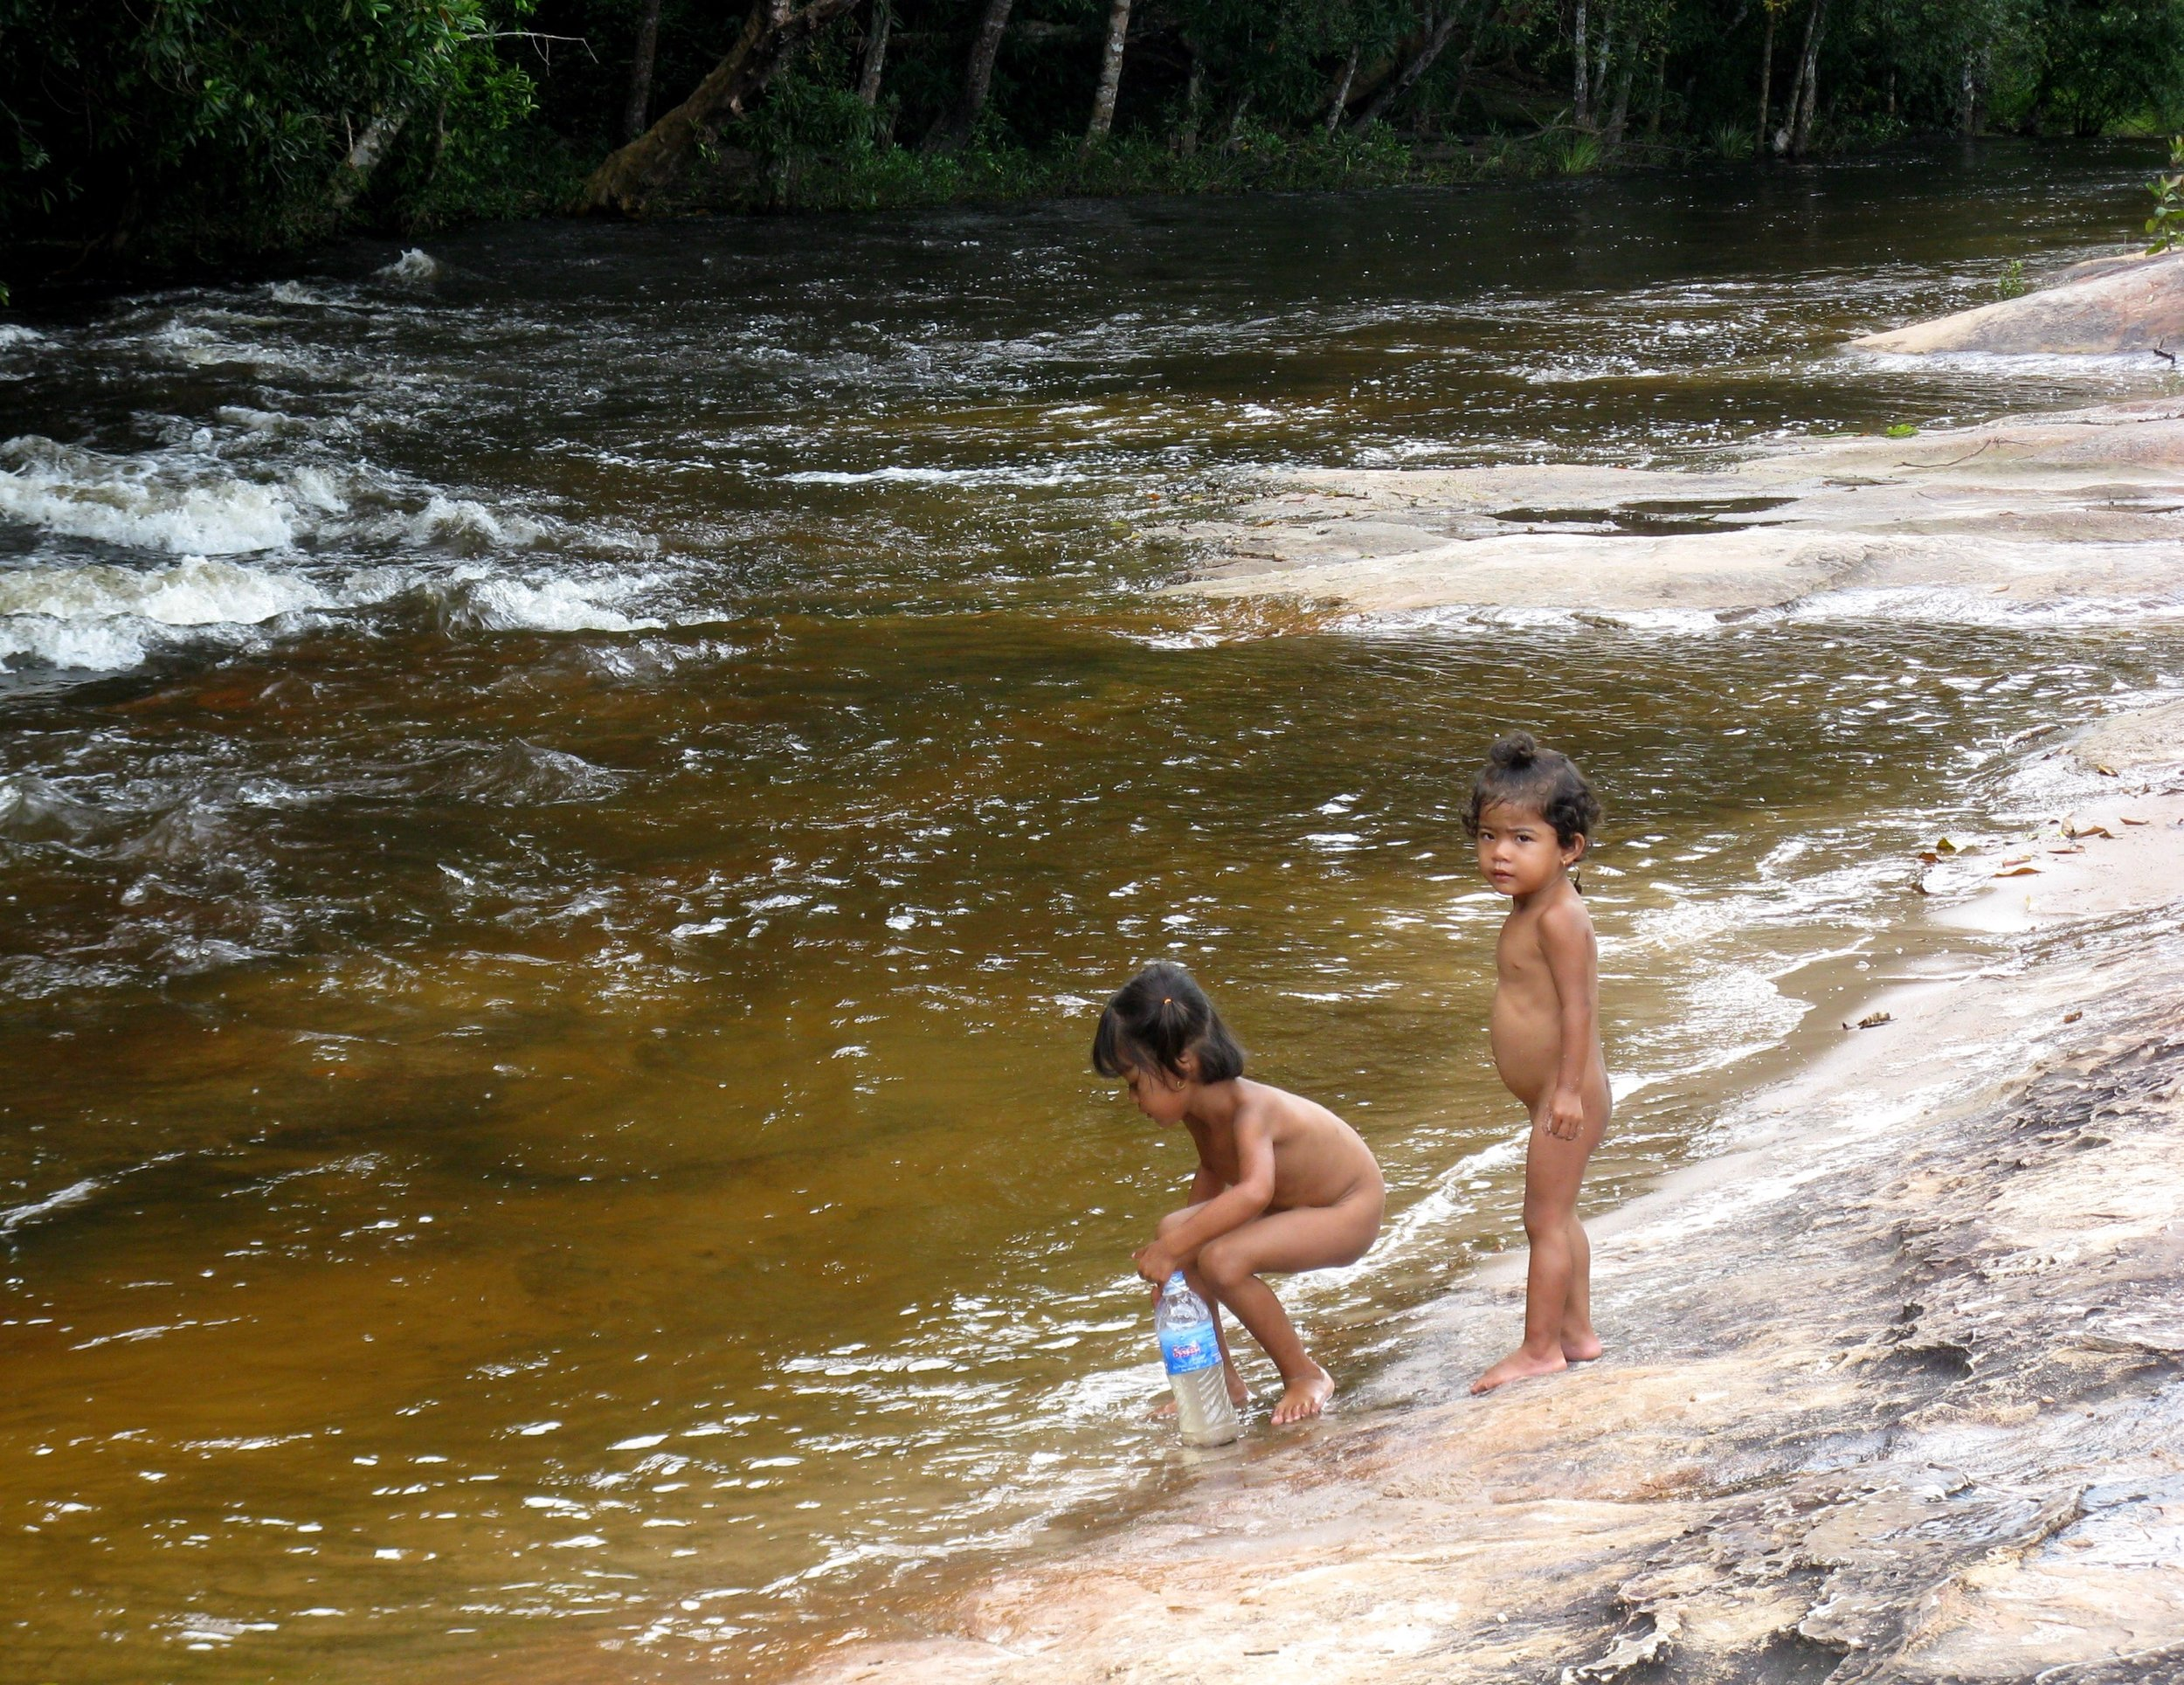 Two young girls frolic on the bank of the Kbal Spean river